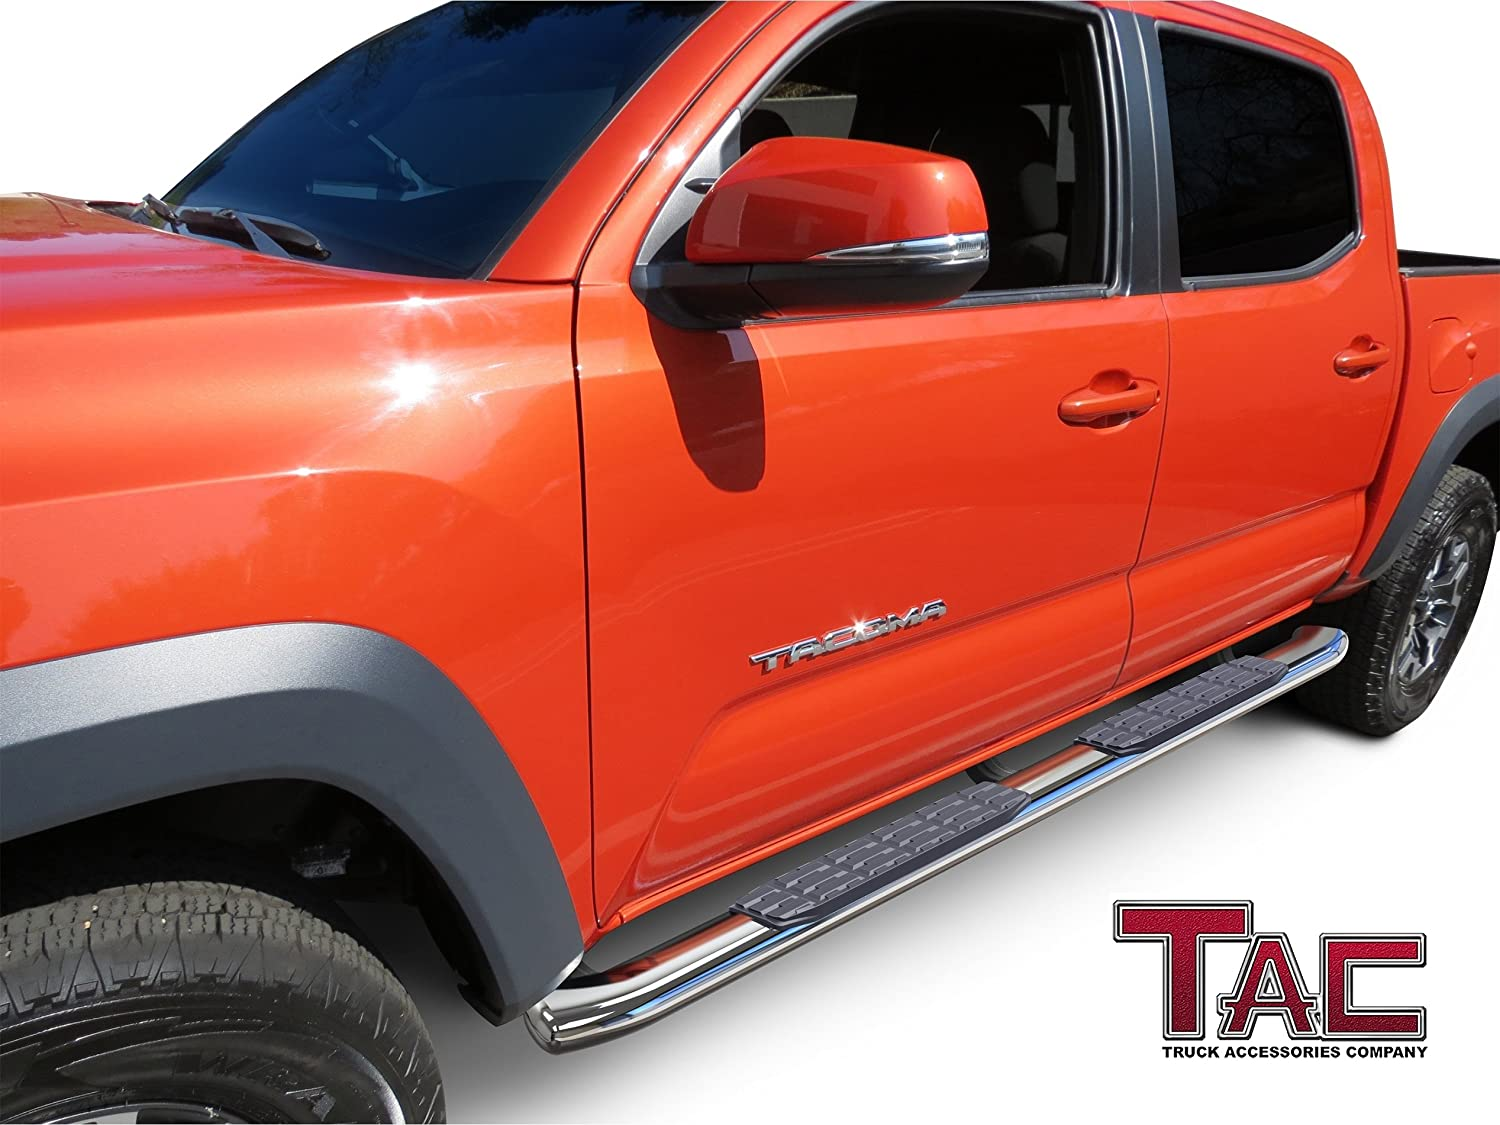 TAC Side Steps Fit 2005-2019 Toyota Tacoma Double Cab 4 Oval Bend T304 Stainless Steel Nerf Bars Running Boards A+ Grade Polish Finish + Mold Form Brackets